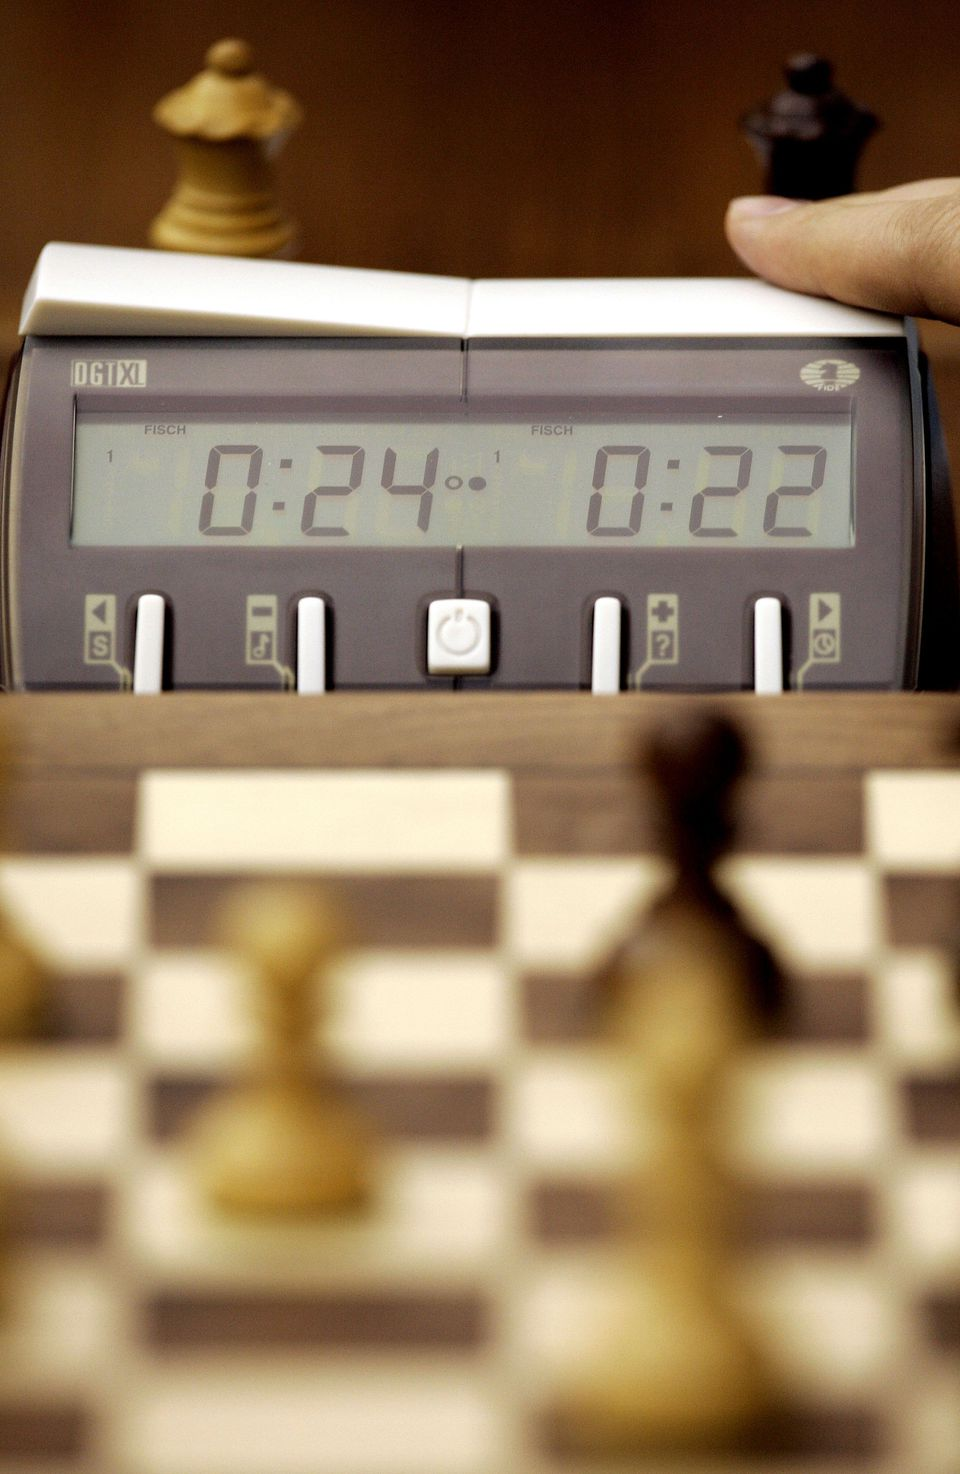 Chess board and timer